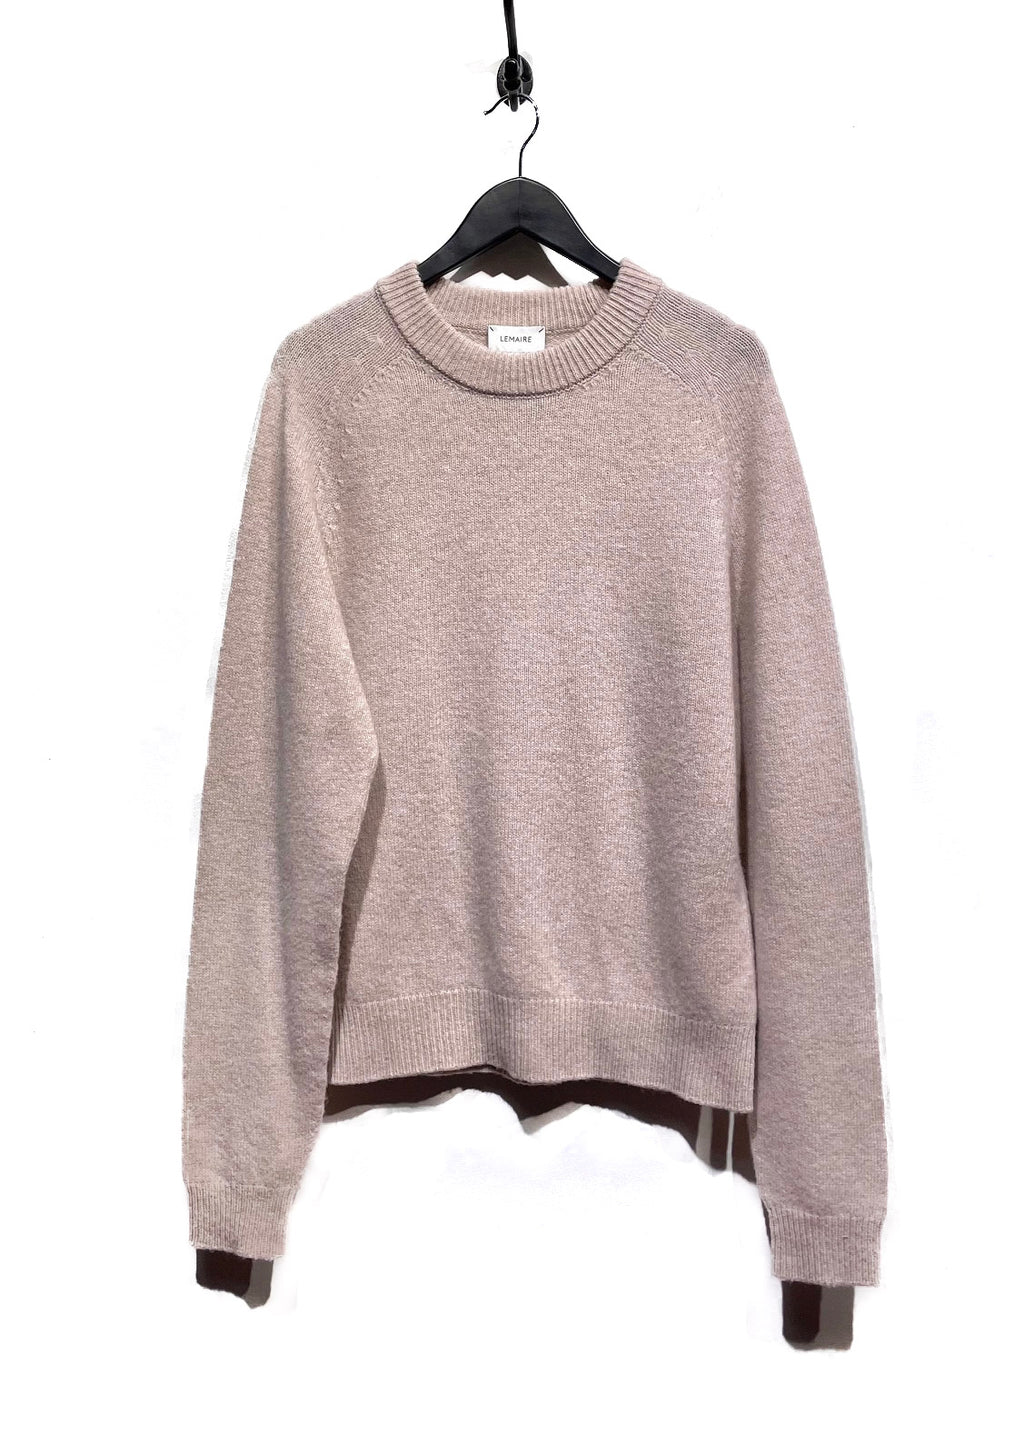 Lemaire Beige Wool Sweater